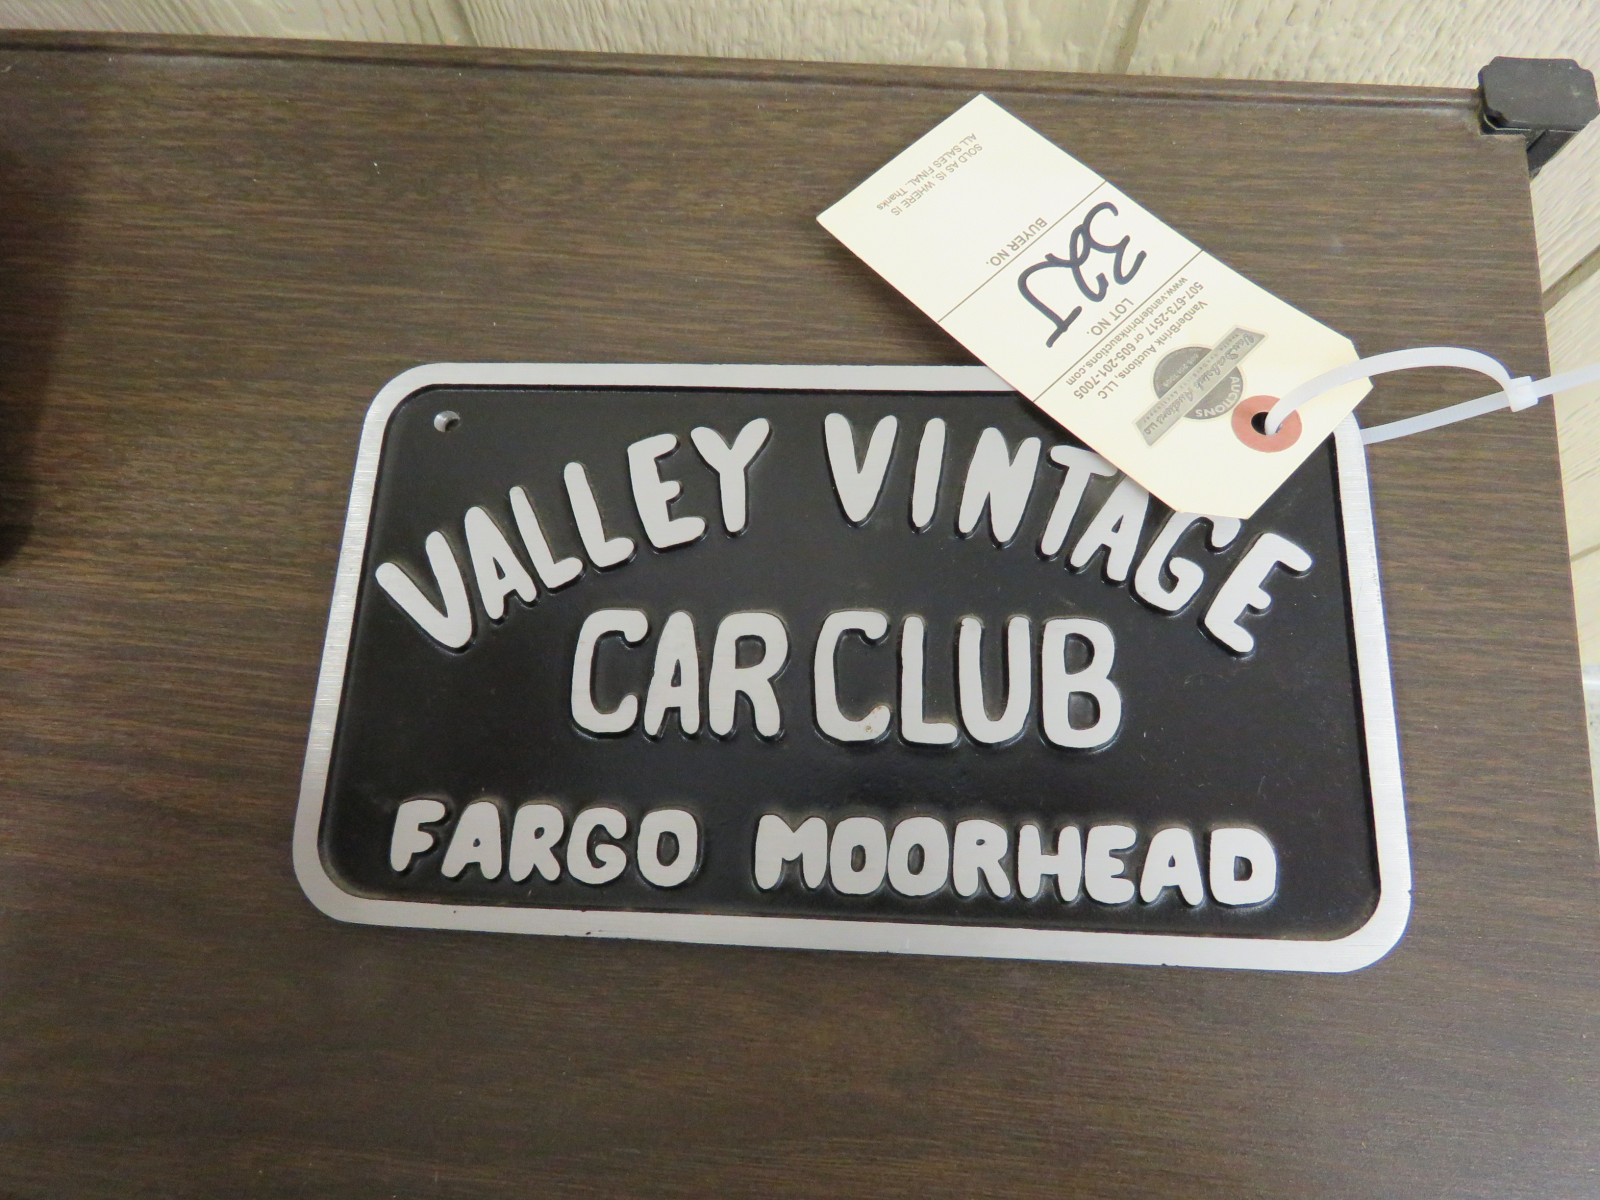 Valley Vintage Car Club -Fargo-Moorhead, ND Plaque - Image 1